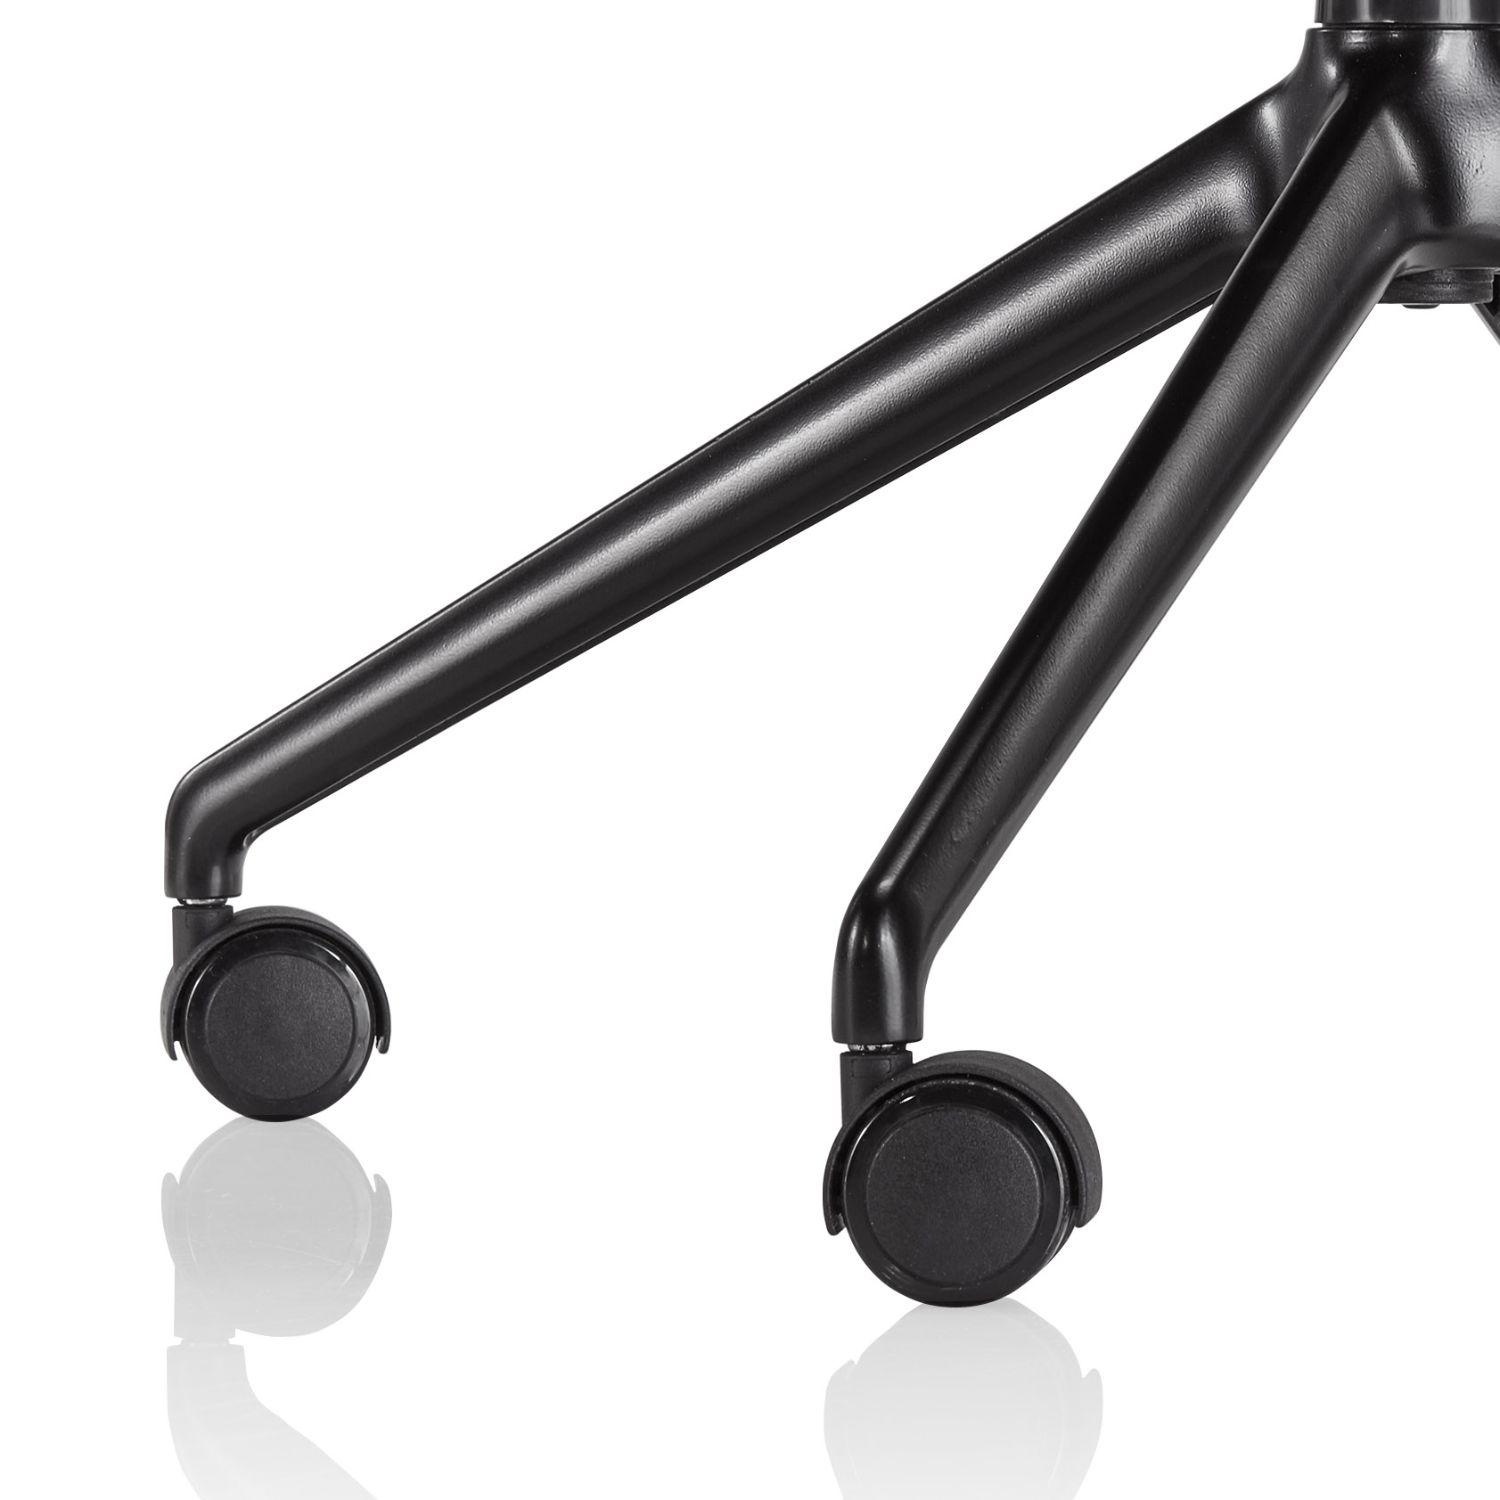 voz swivel base and casters